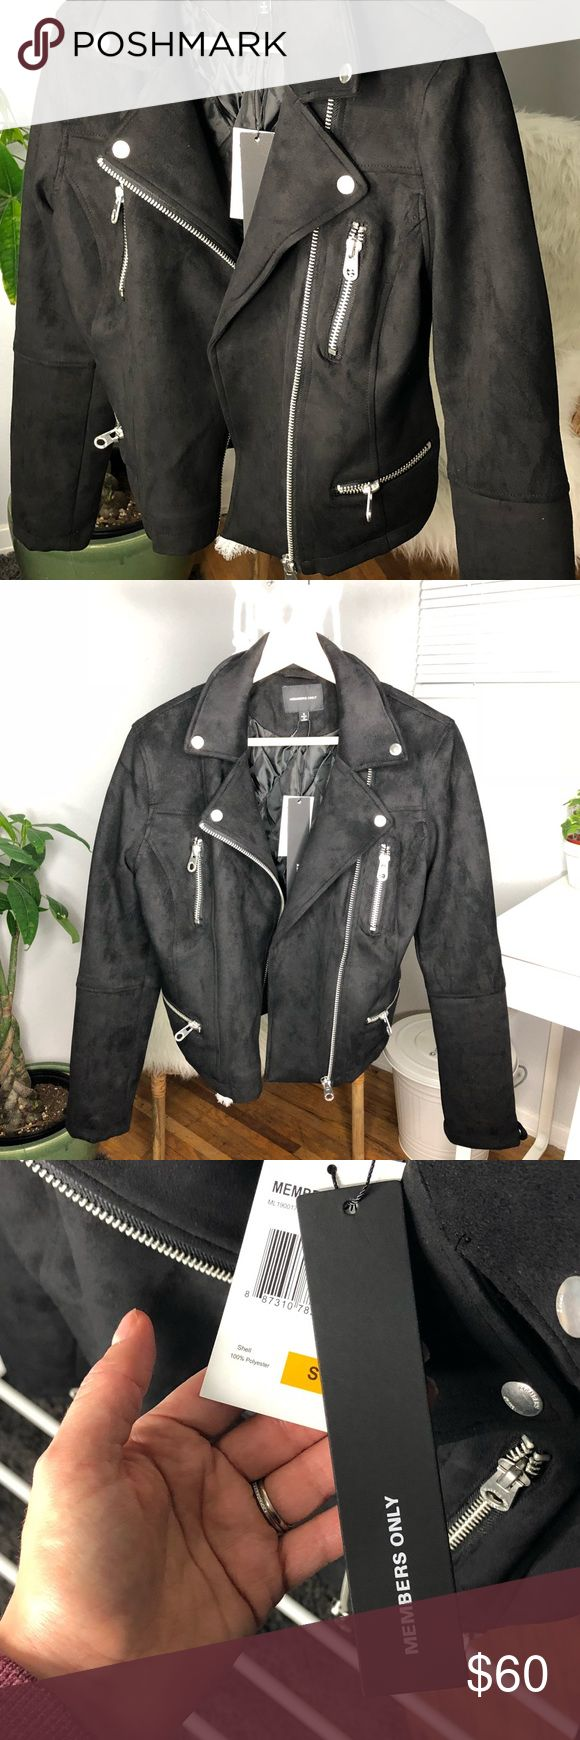 Member's Only Woman's Faux Suede Biker Jacket Adorable biker jacket from the classic brand Member's Only. Stretchy material and very comfortable. Only wore to take pictures, still has tags on Members Only Jackets & Coats